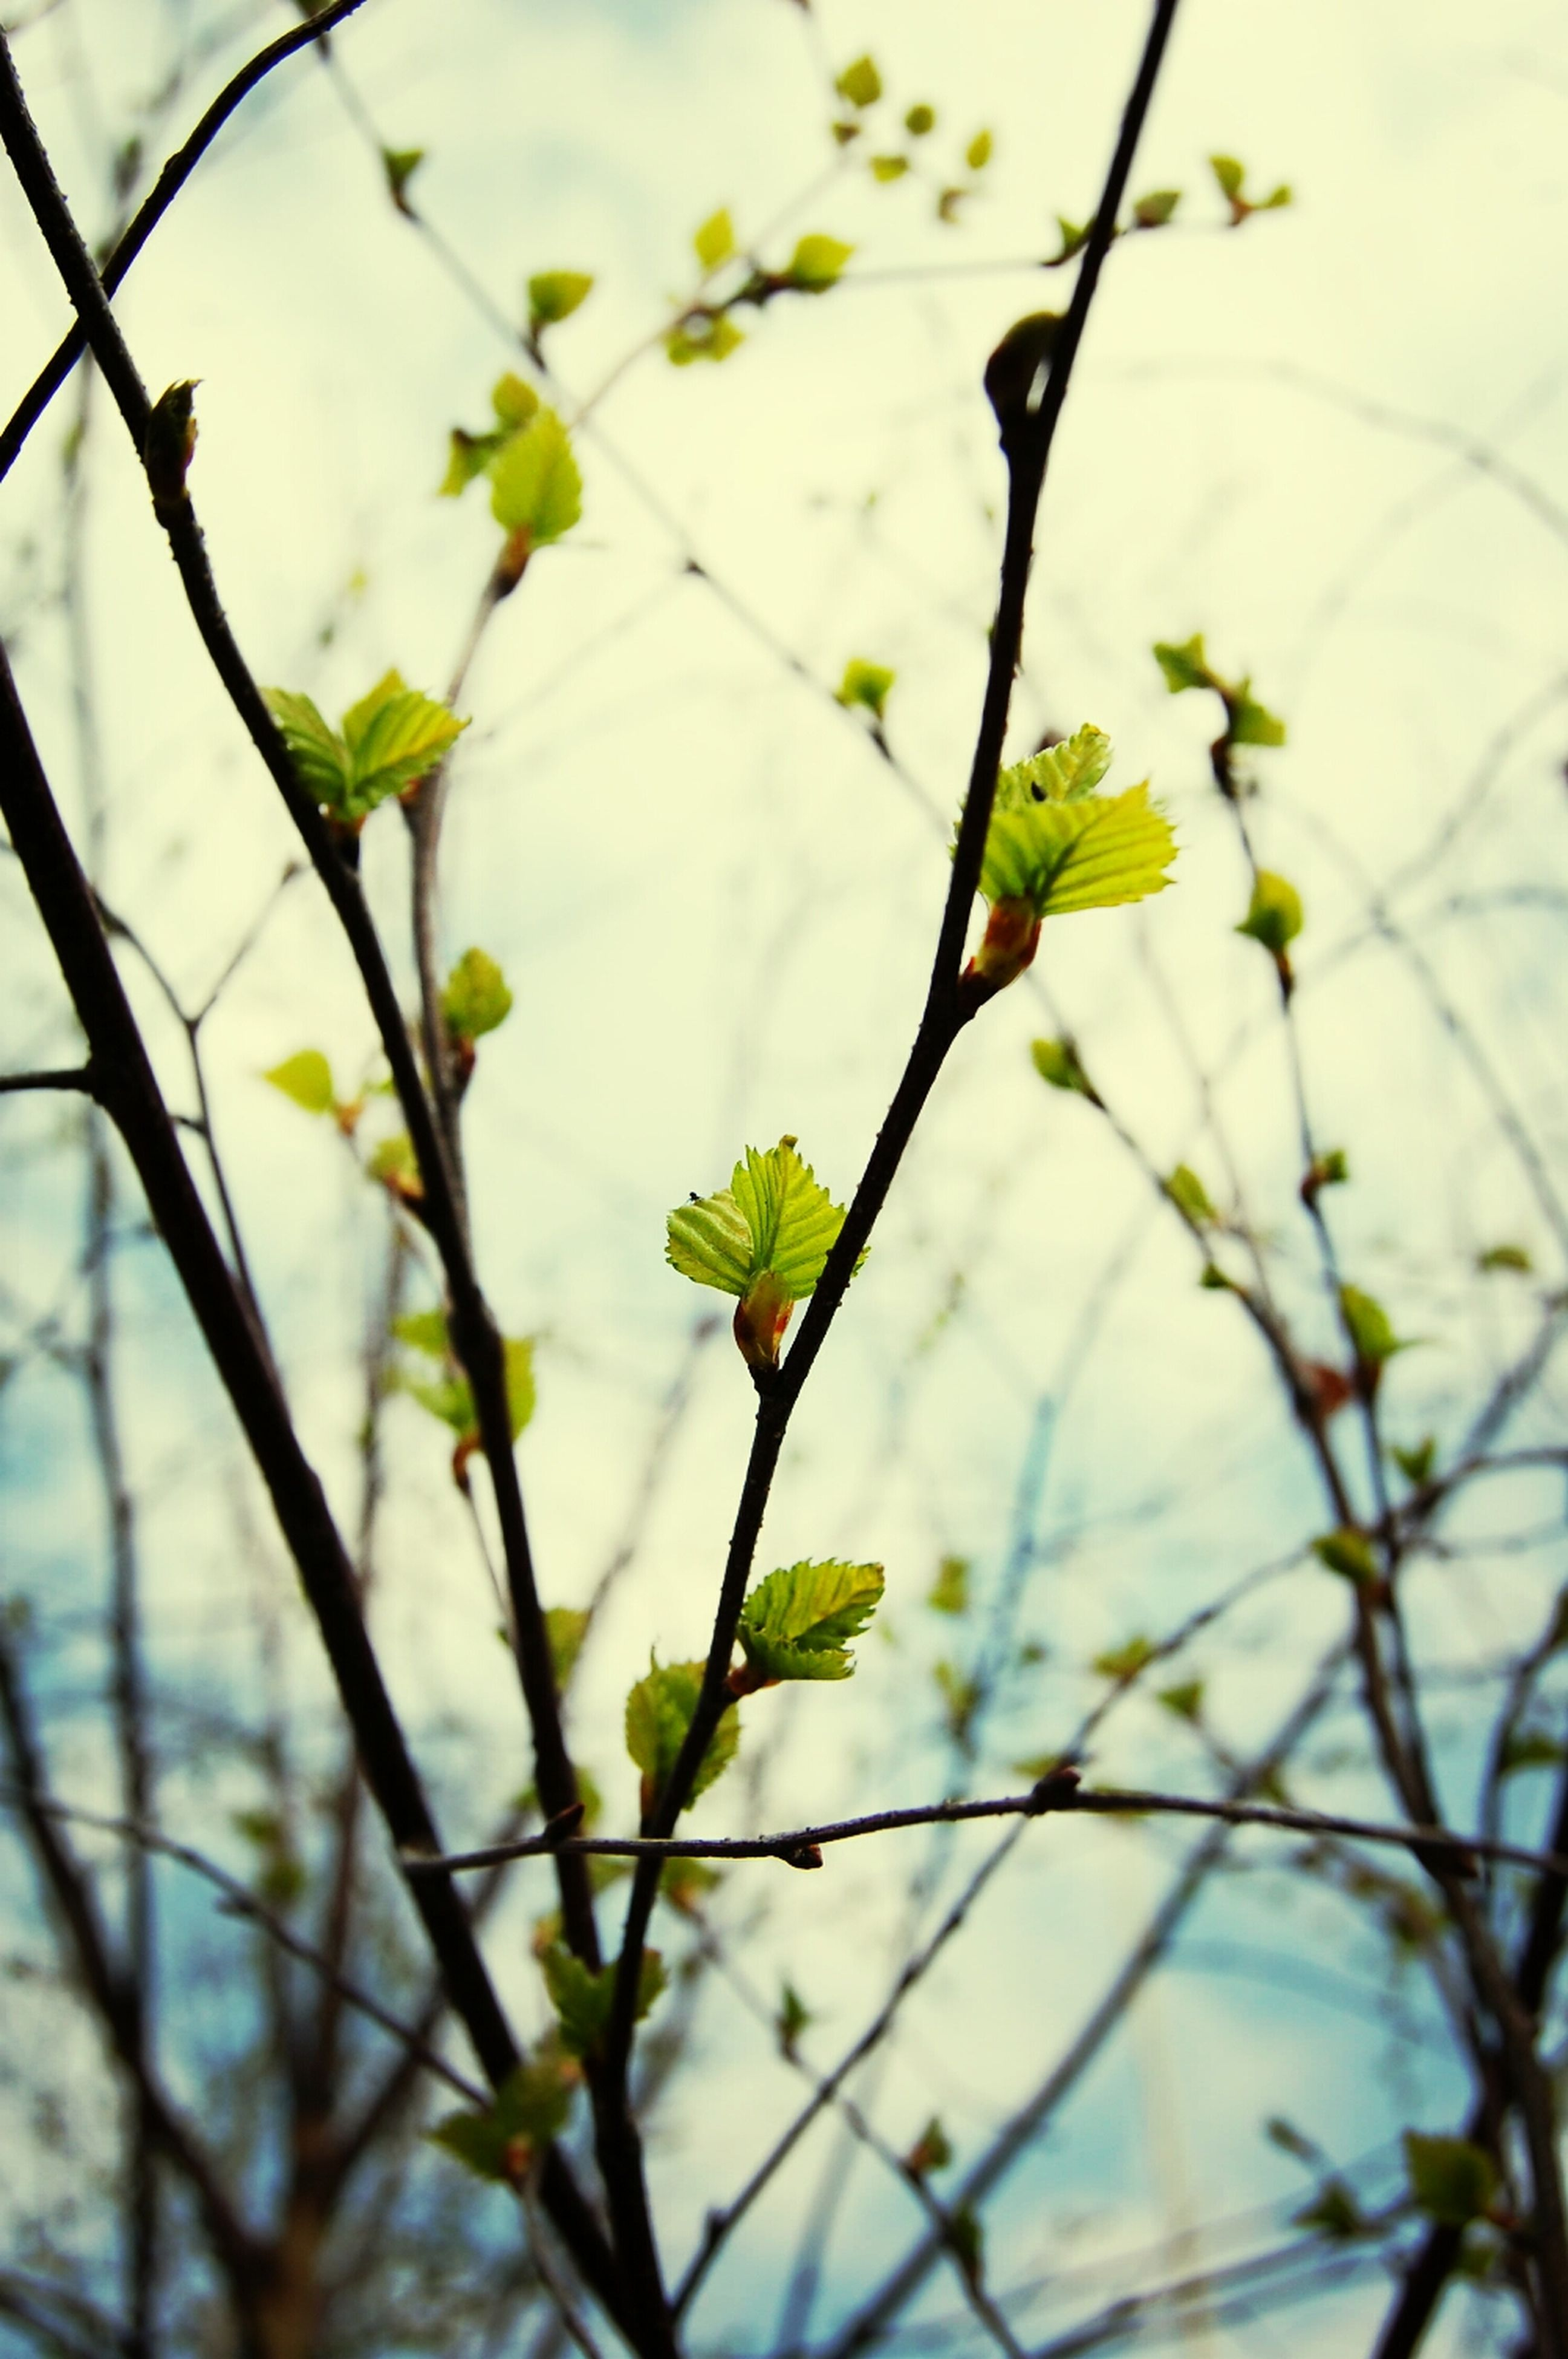 branch, low angle view, tree, growth, twig, focus on foreground, nature, close-up, beauty in nature, leaf, freshness, flower, selective focus, outdoors, day, fragility, sky, no people, clear sky, blossom